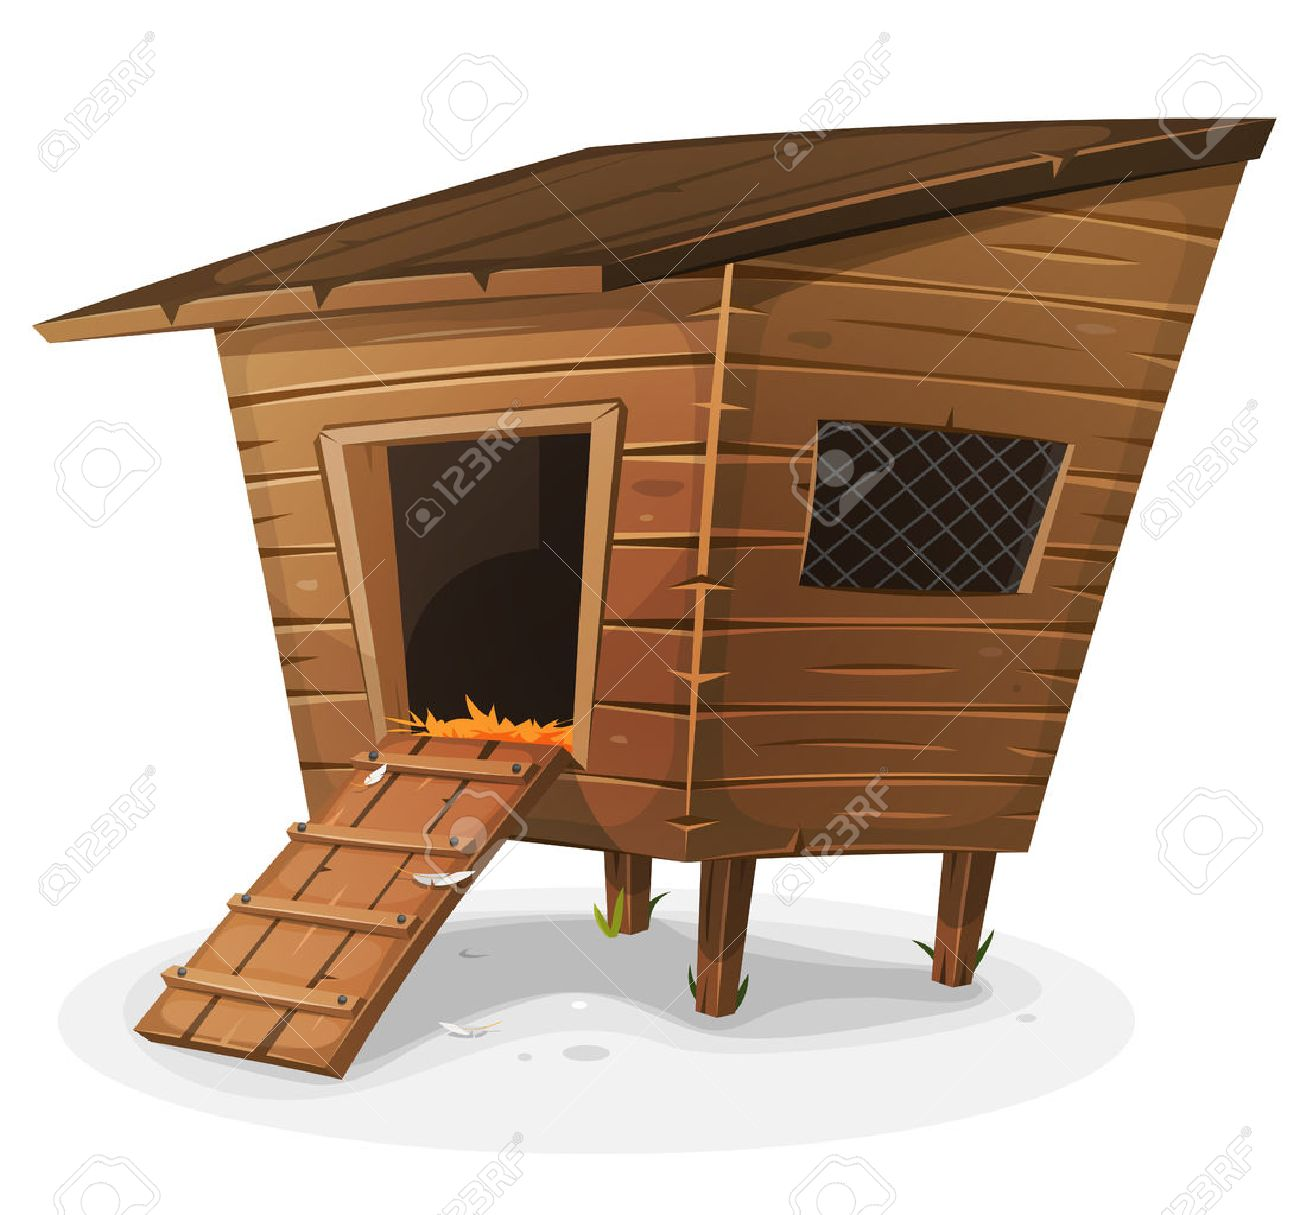 Illustration Of A Cartoon Wooden Farm Chicken Coop With Entrance And Little Window Grid